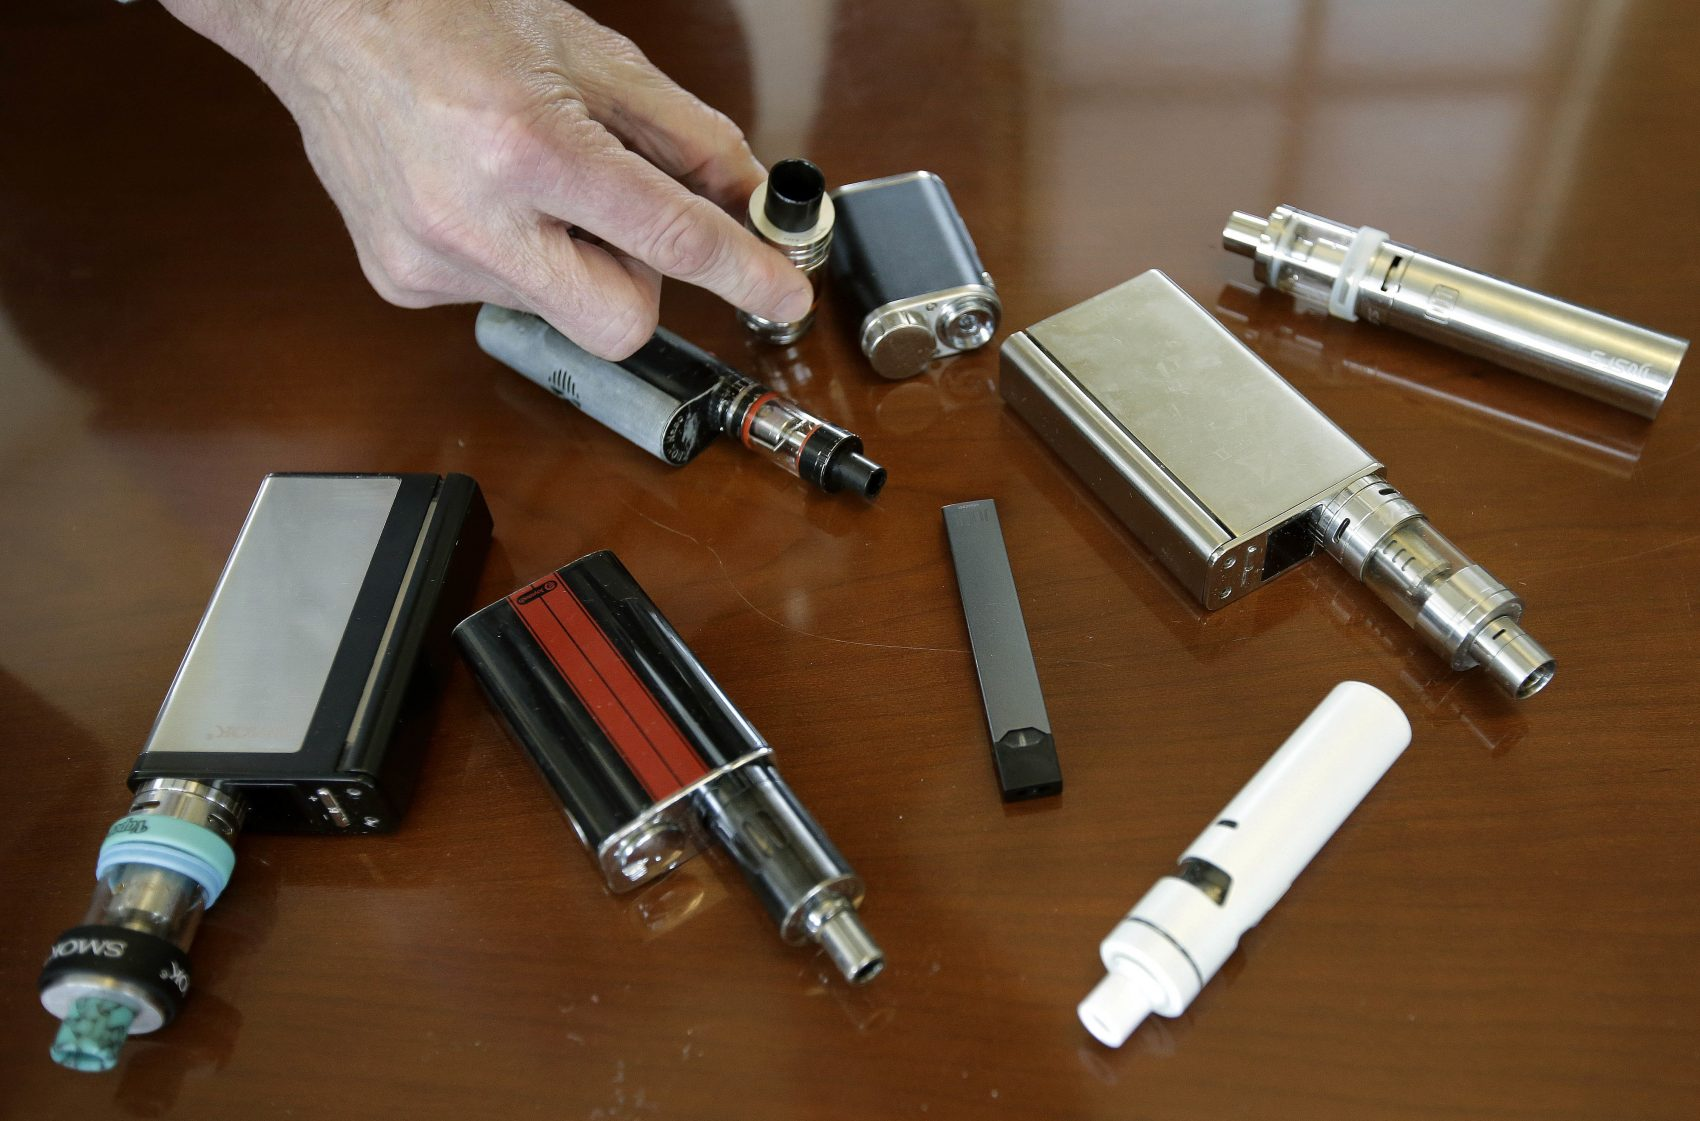 Marshfield High School principal Robert Keuther displays vaping devices that were confiscated from students in such places as restrooms or hallways at the school. (Steven Senne/AP)